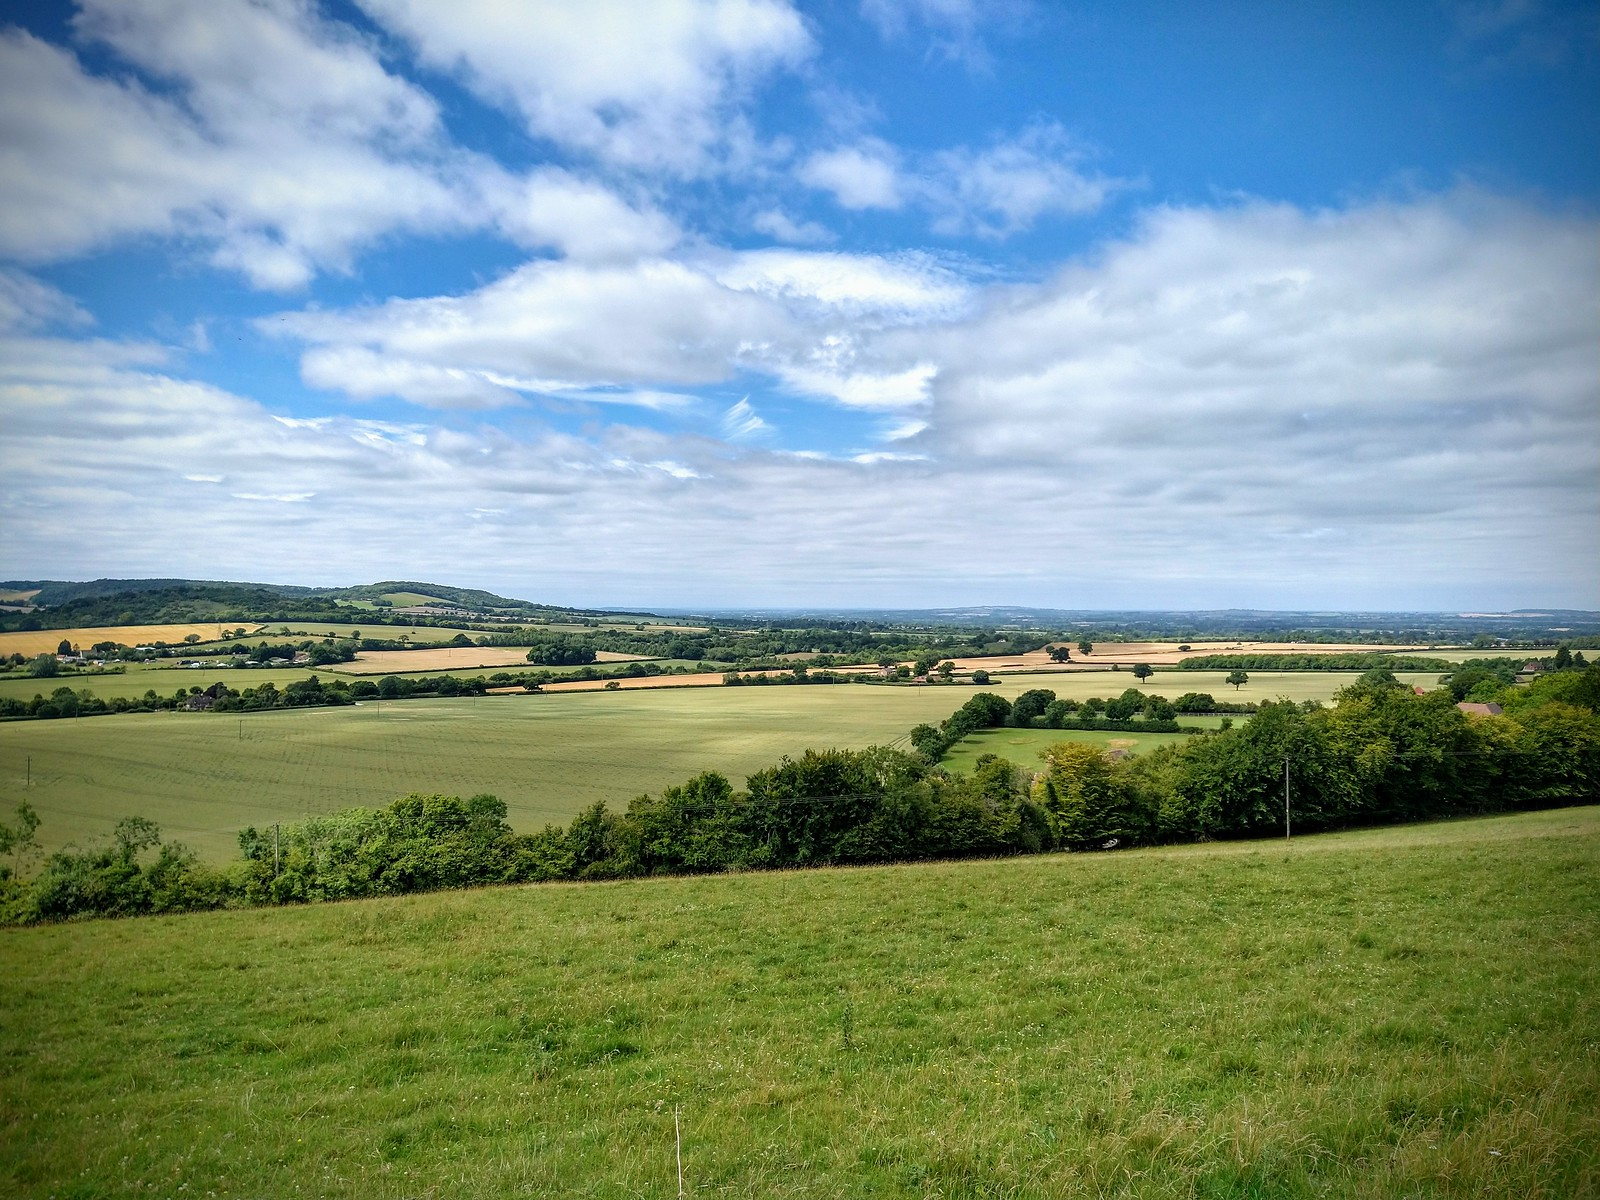 Saunderton - Chinnor Hill Circular Walk